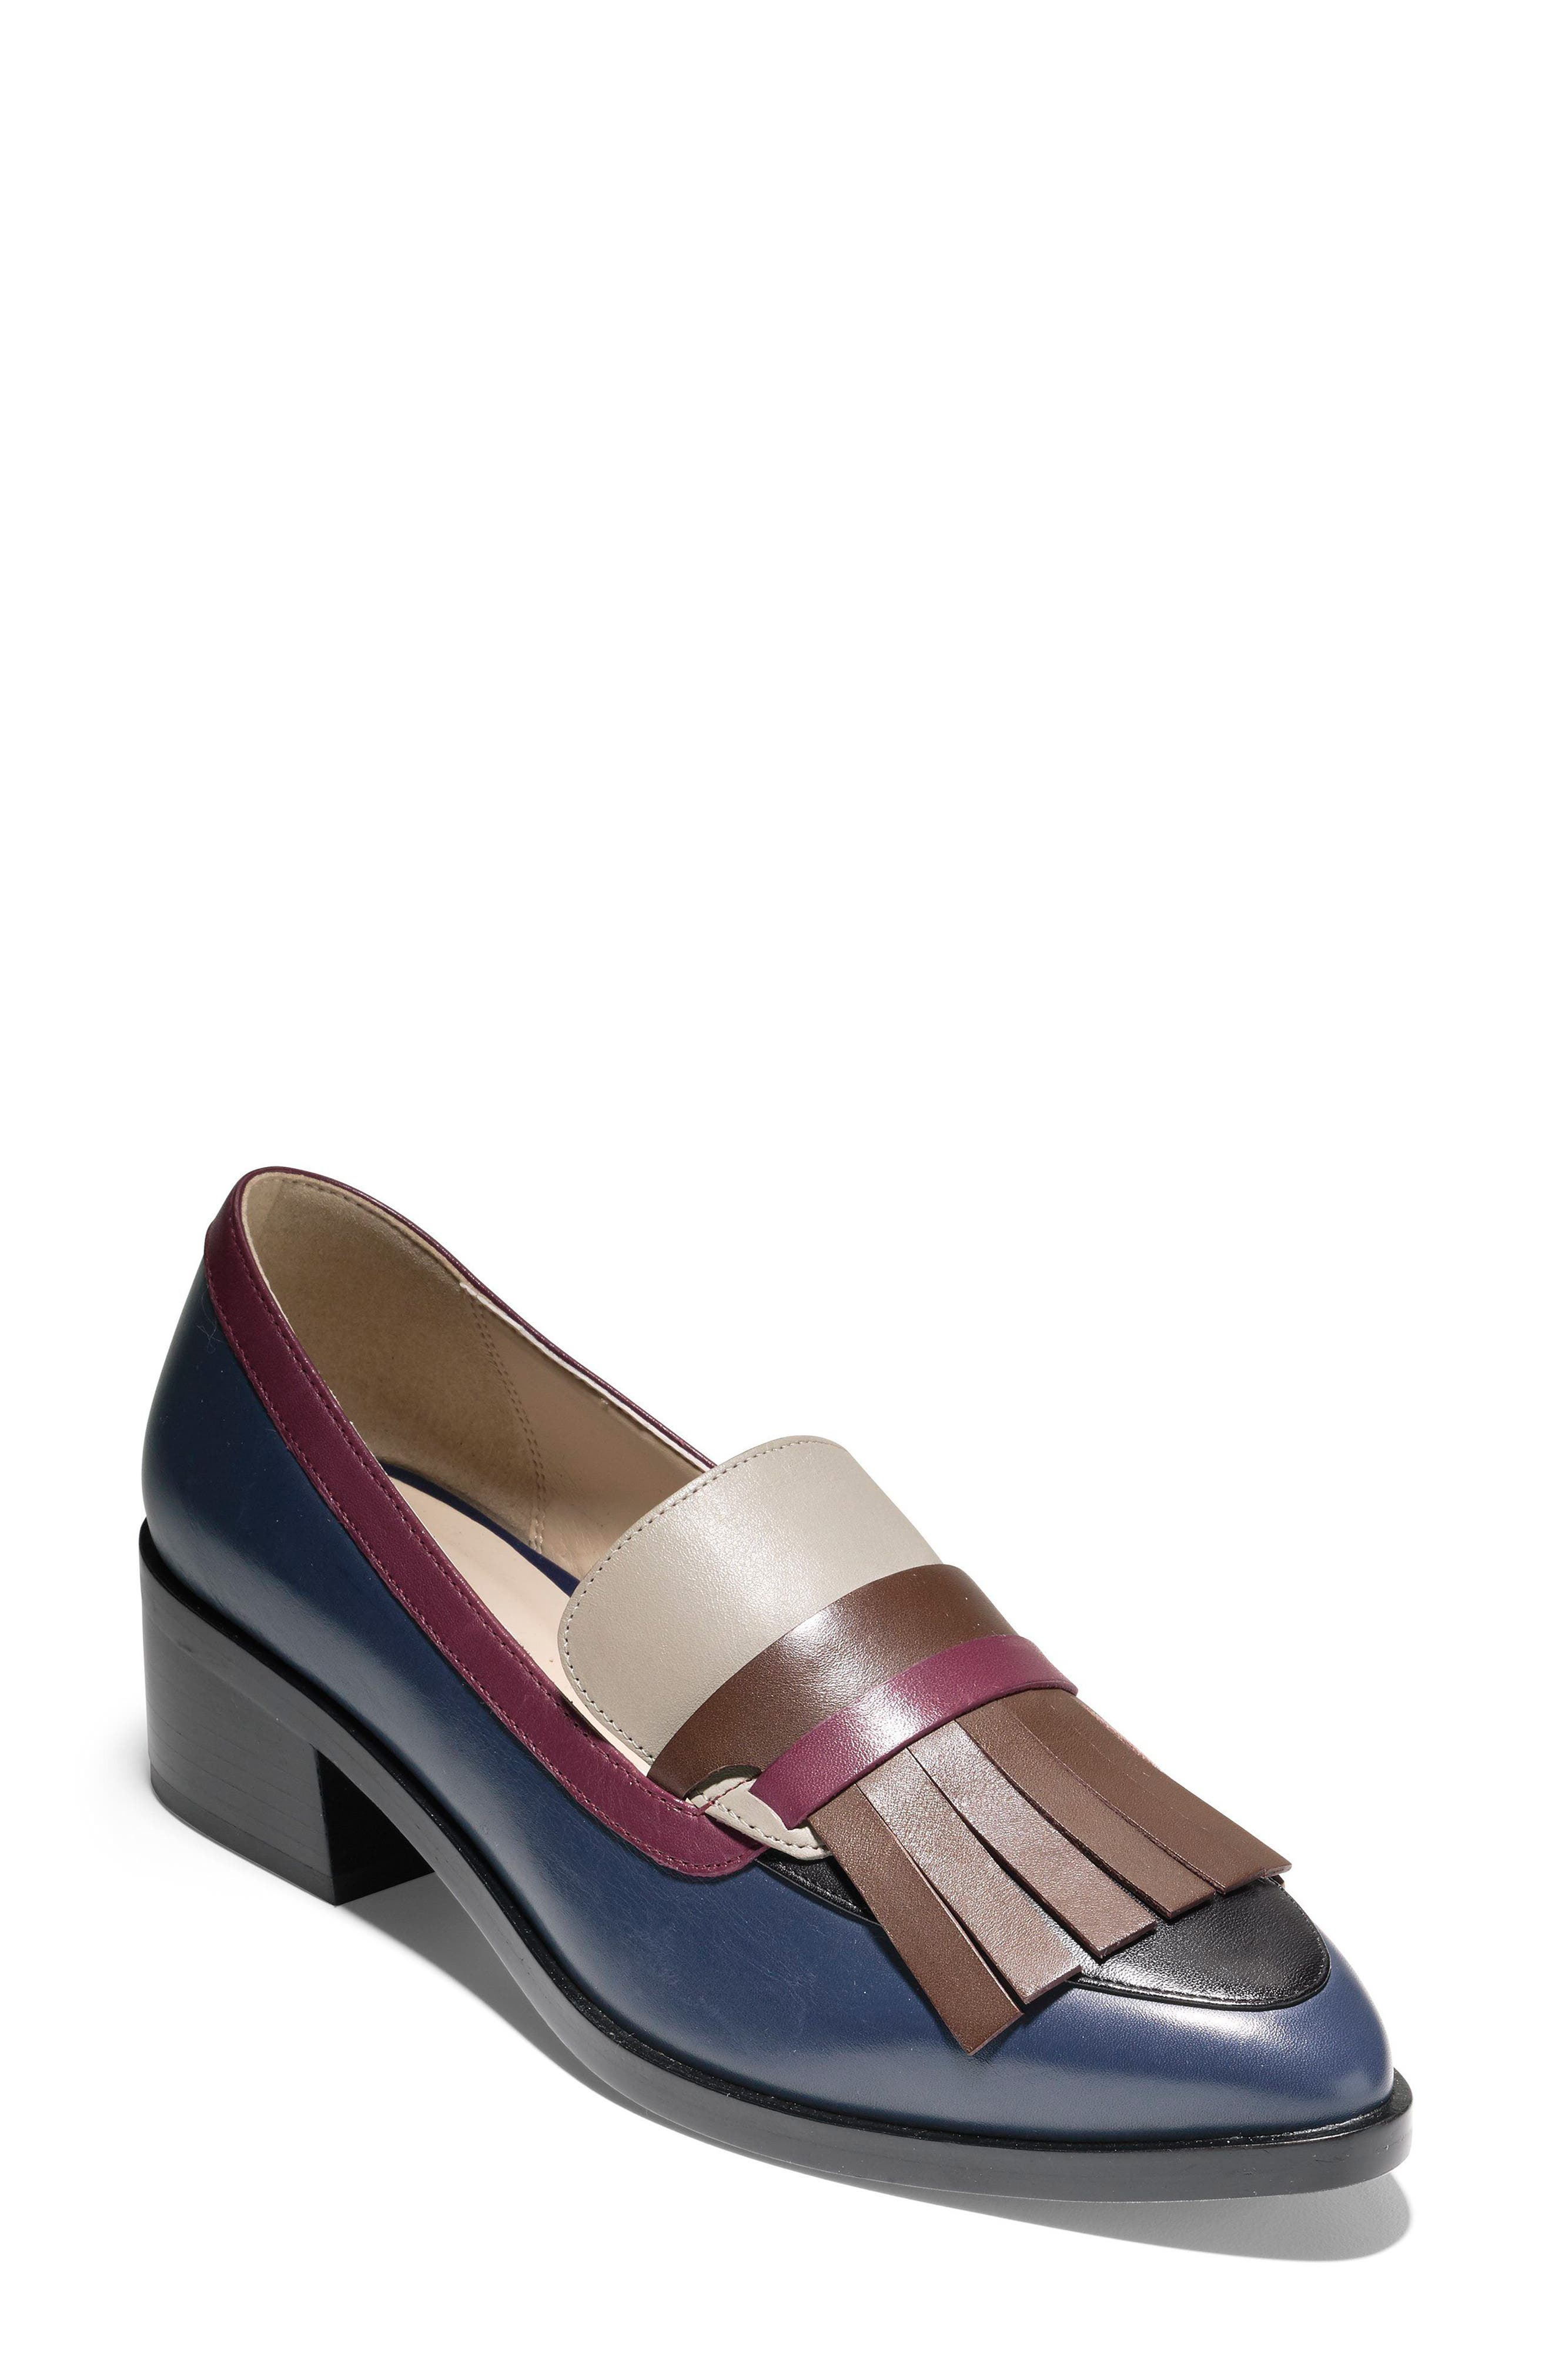 Margarite Loafer Pump,                         Main,                         color, Marine Blue Leather